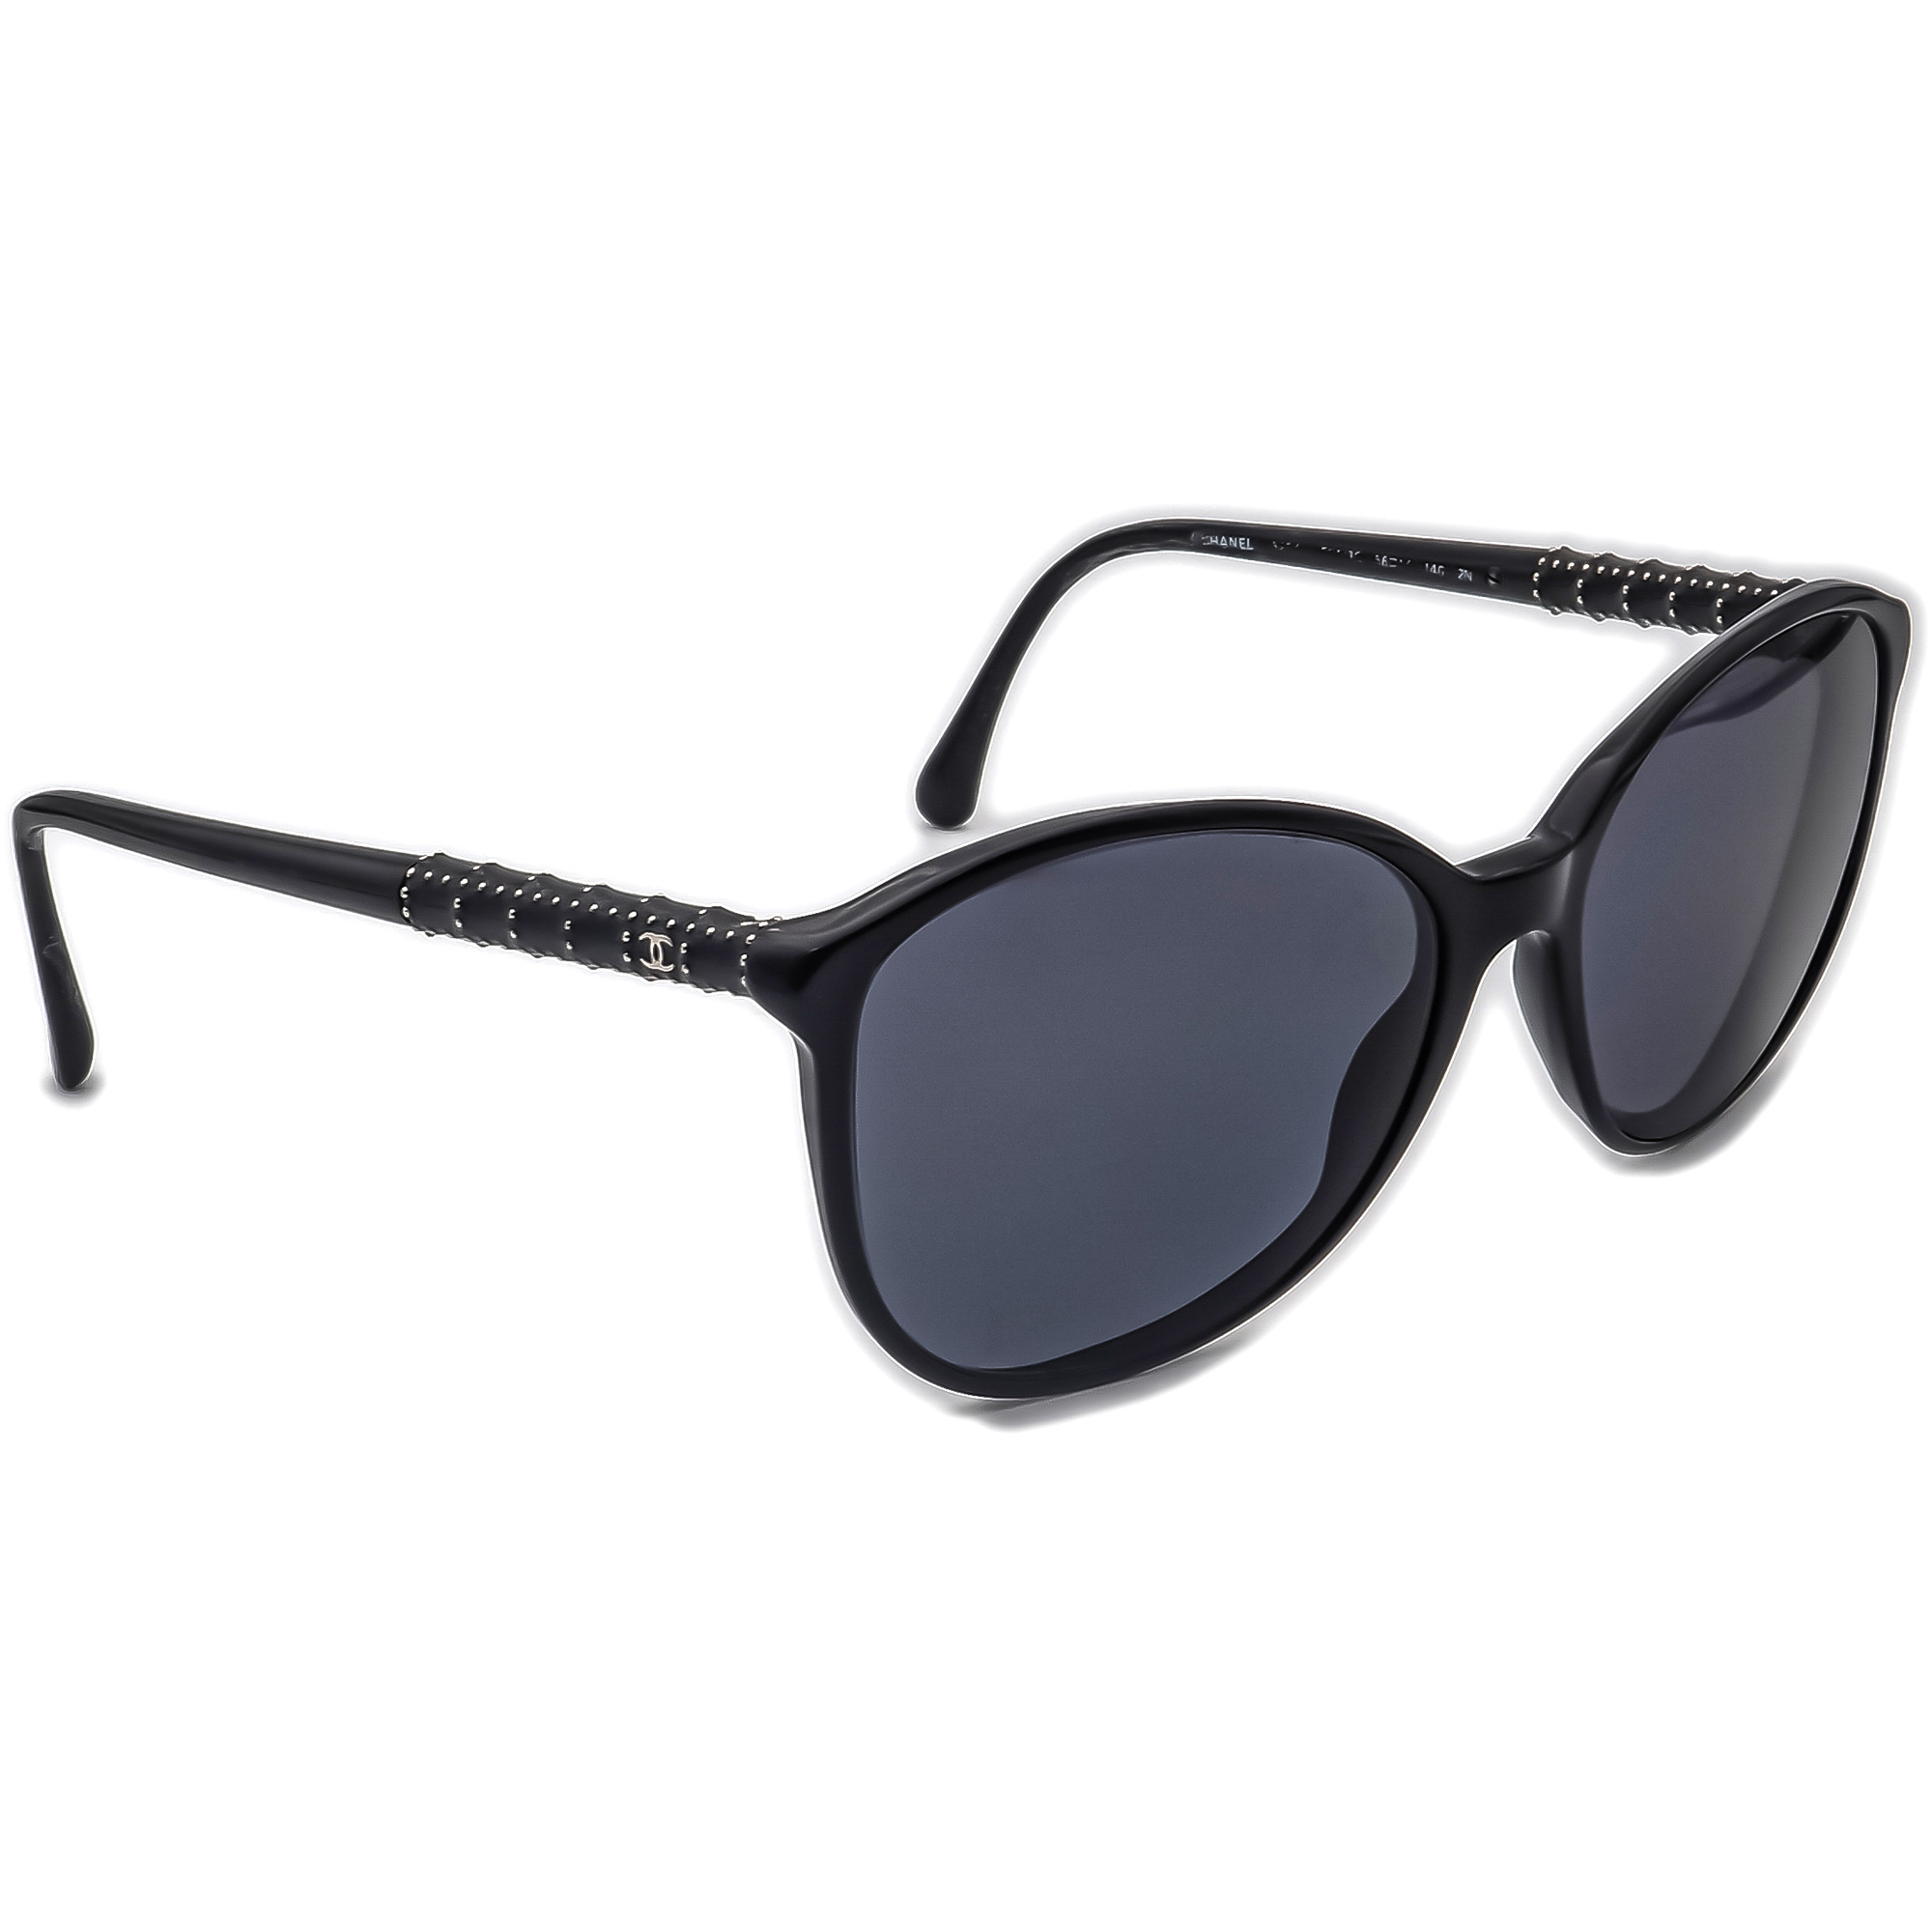 Chanel 5207 5013C Sunglasses Frame Only